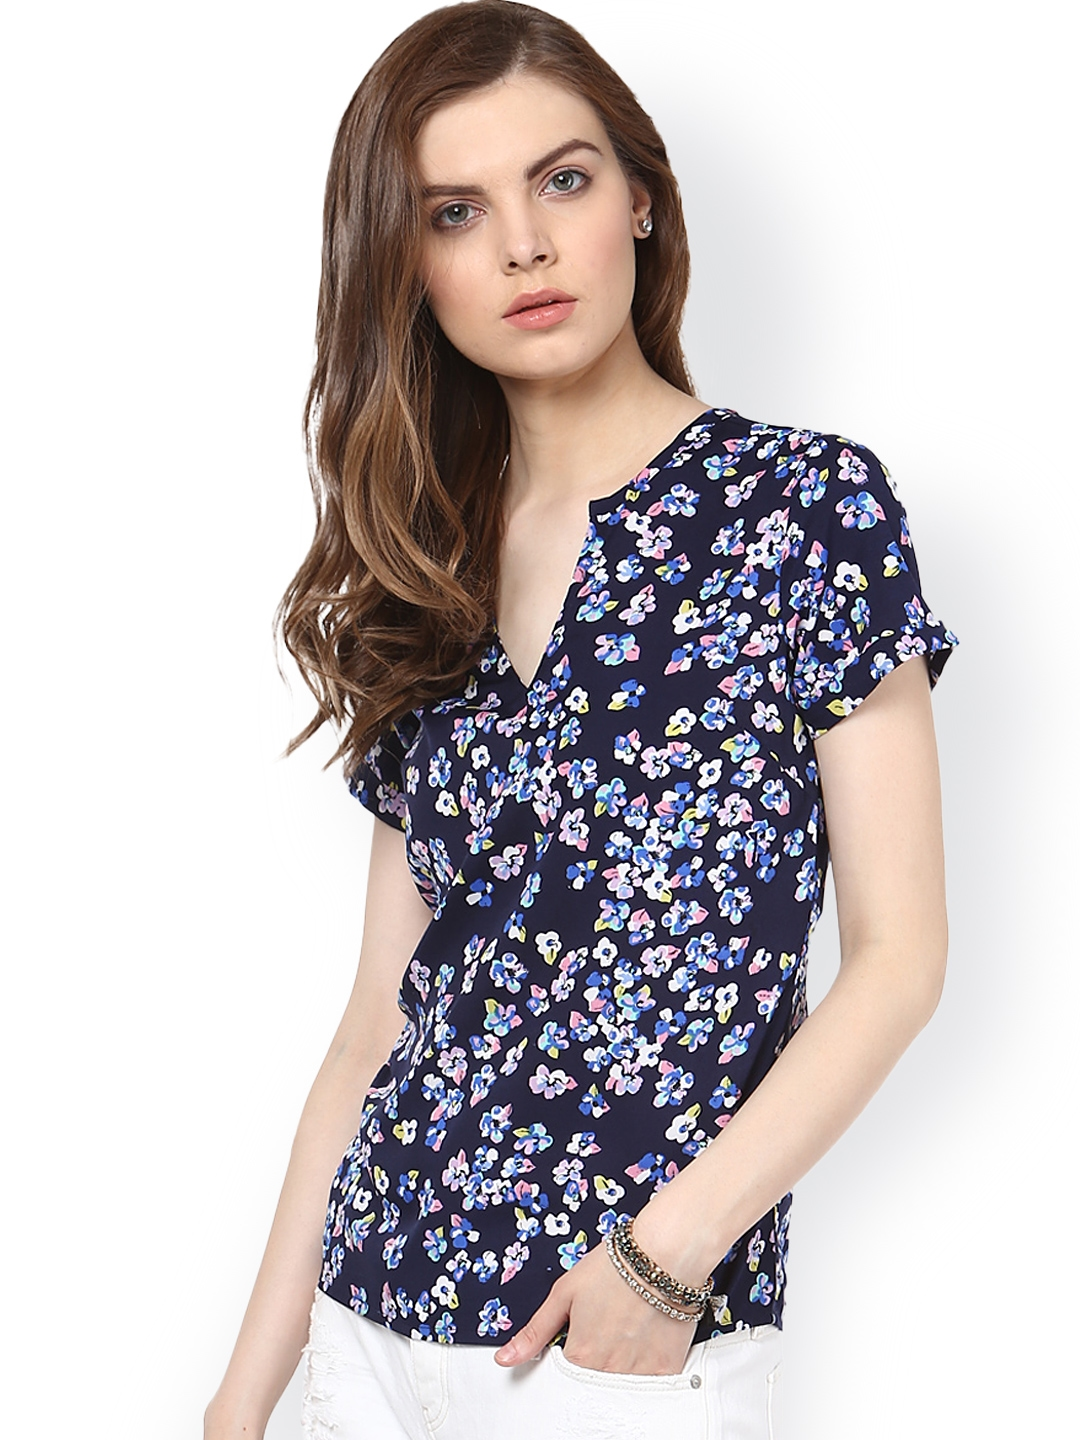 bf7161ae00f5 Buy Harpa Navy Floral Print Top - Tops for Women 1371684 | Myntra